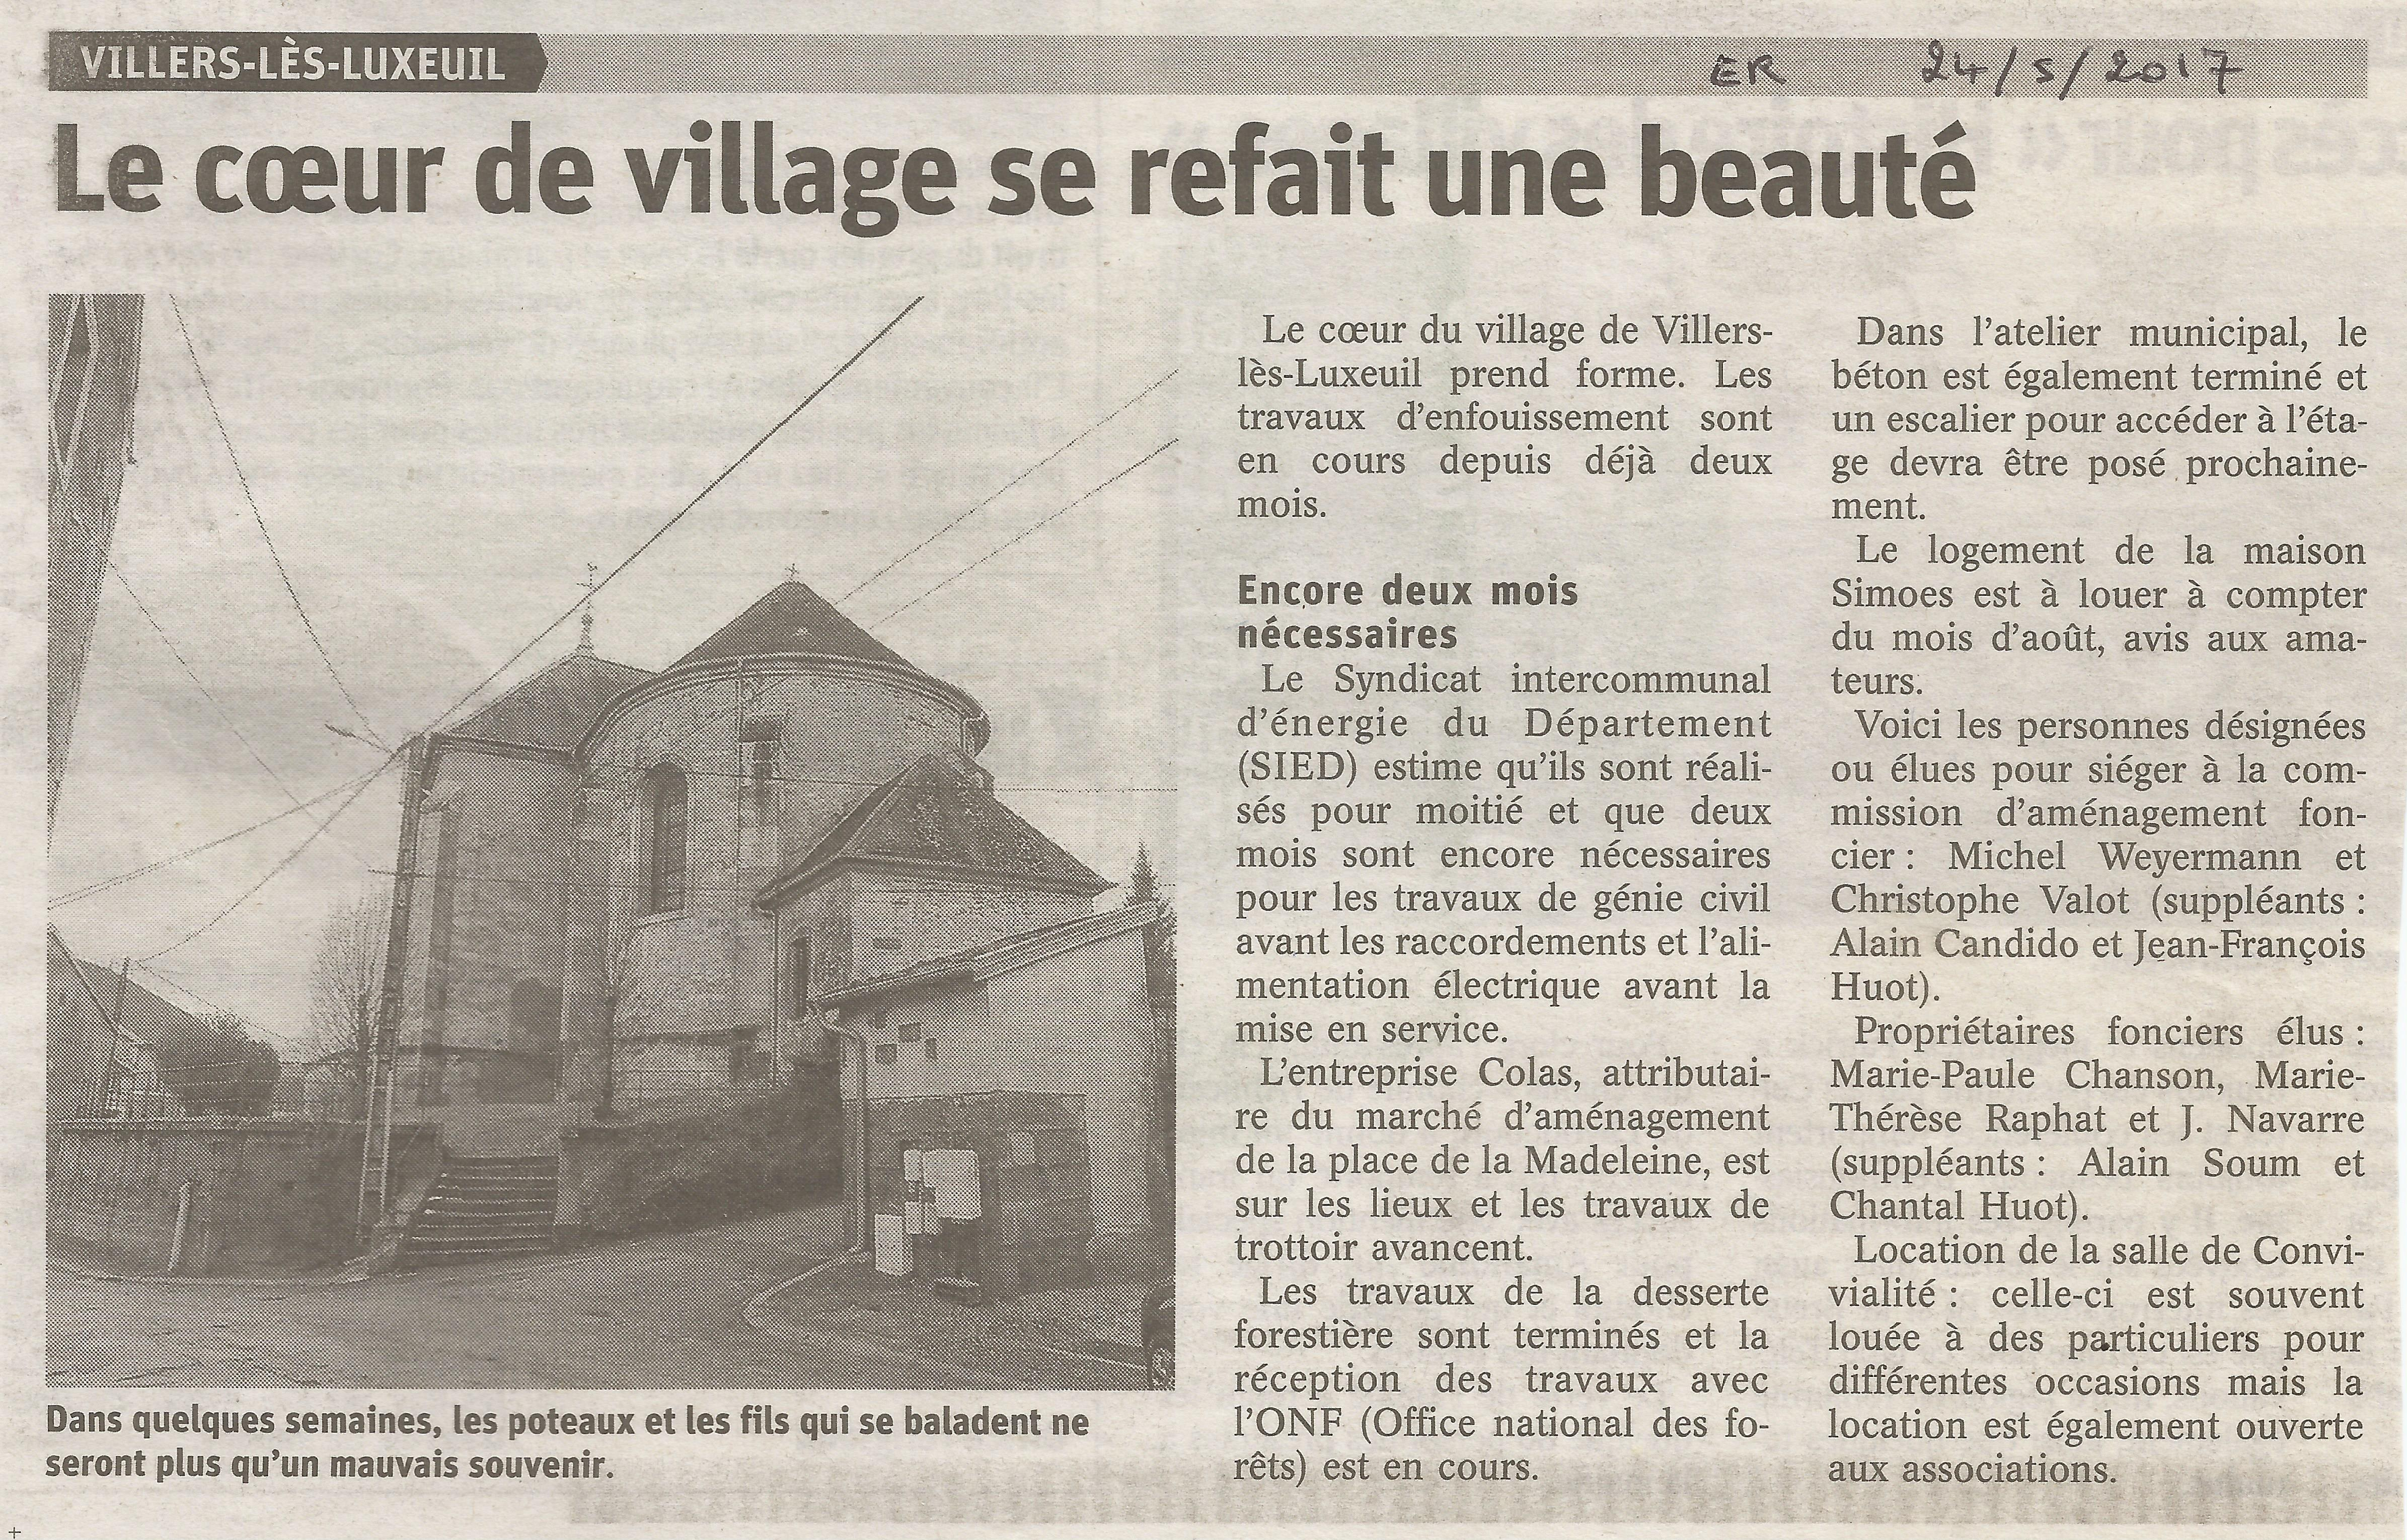 https://www.villers-les-luxeuil.com/projets/villers/files/images/2017_Mairie/Presse/2017_05_24.jpg